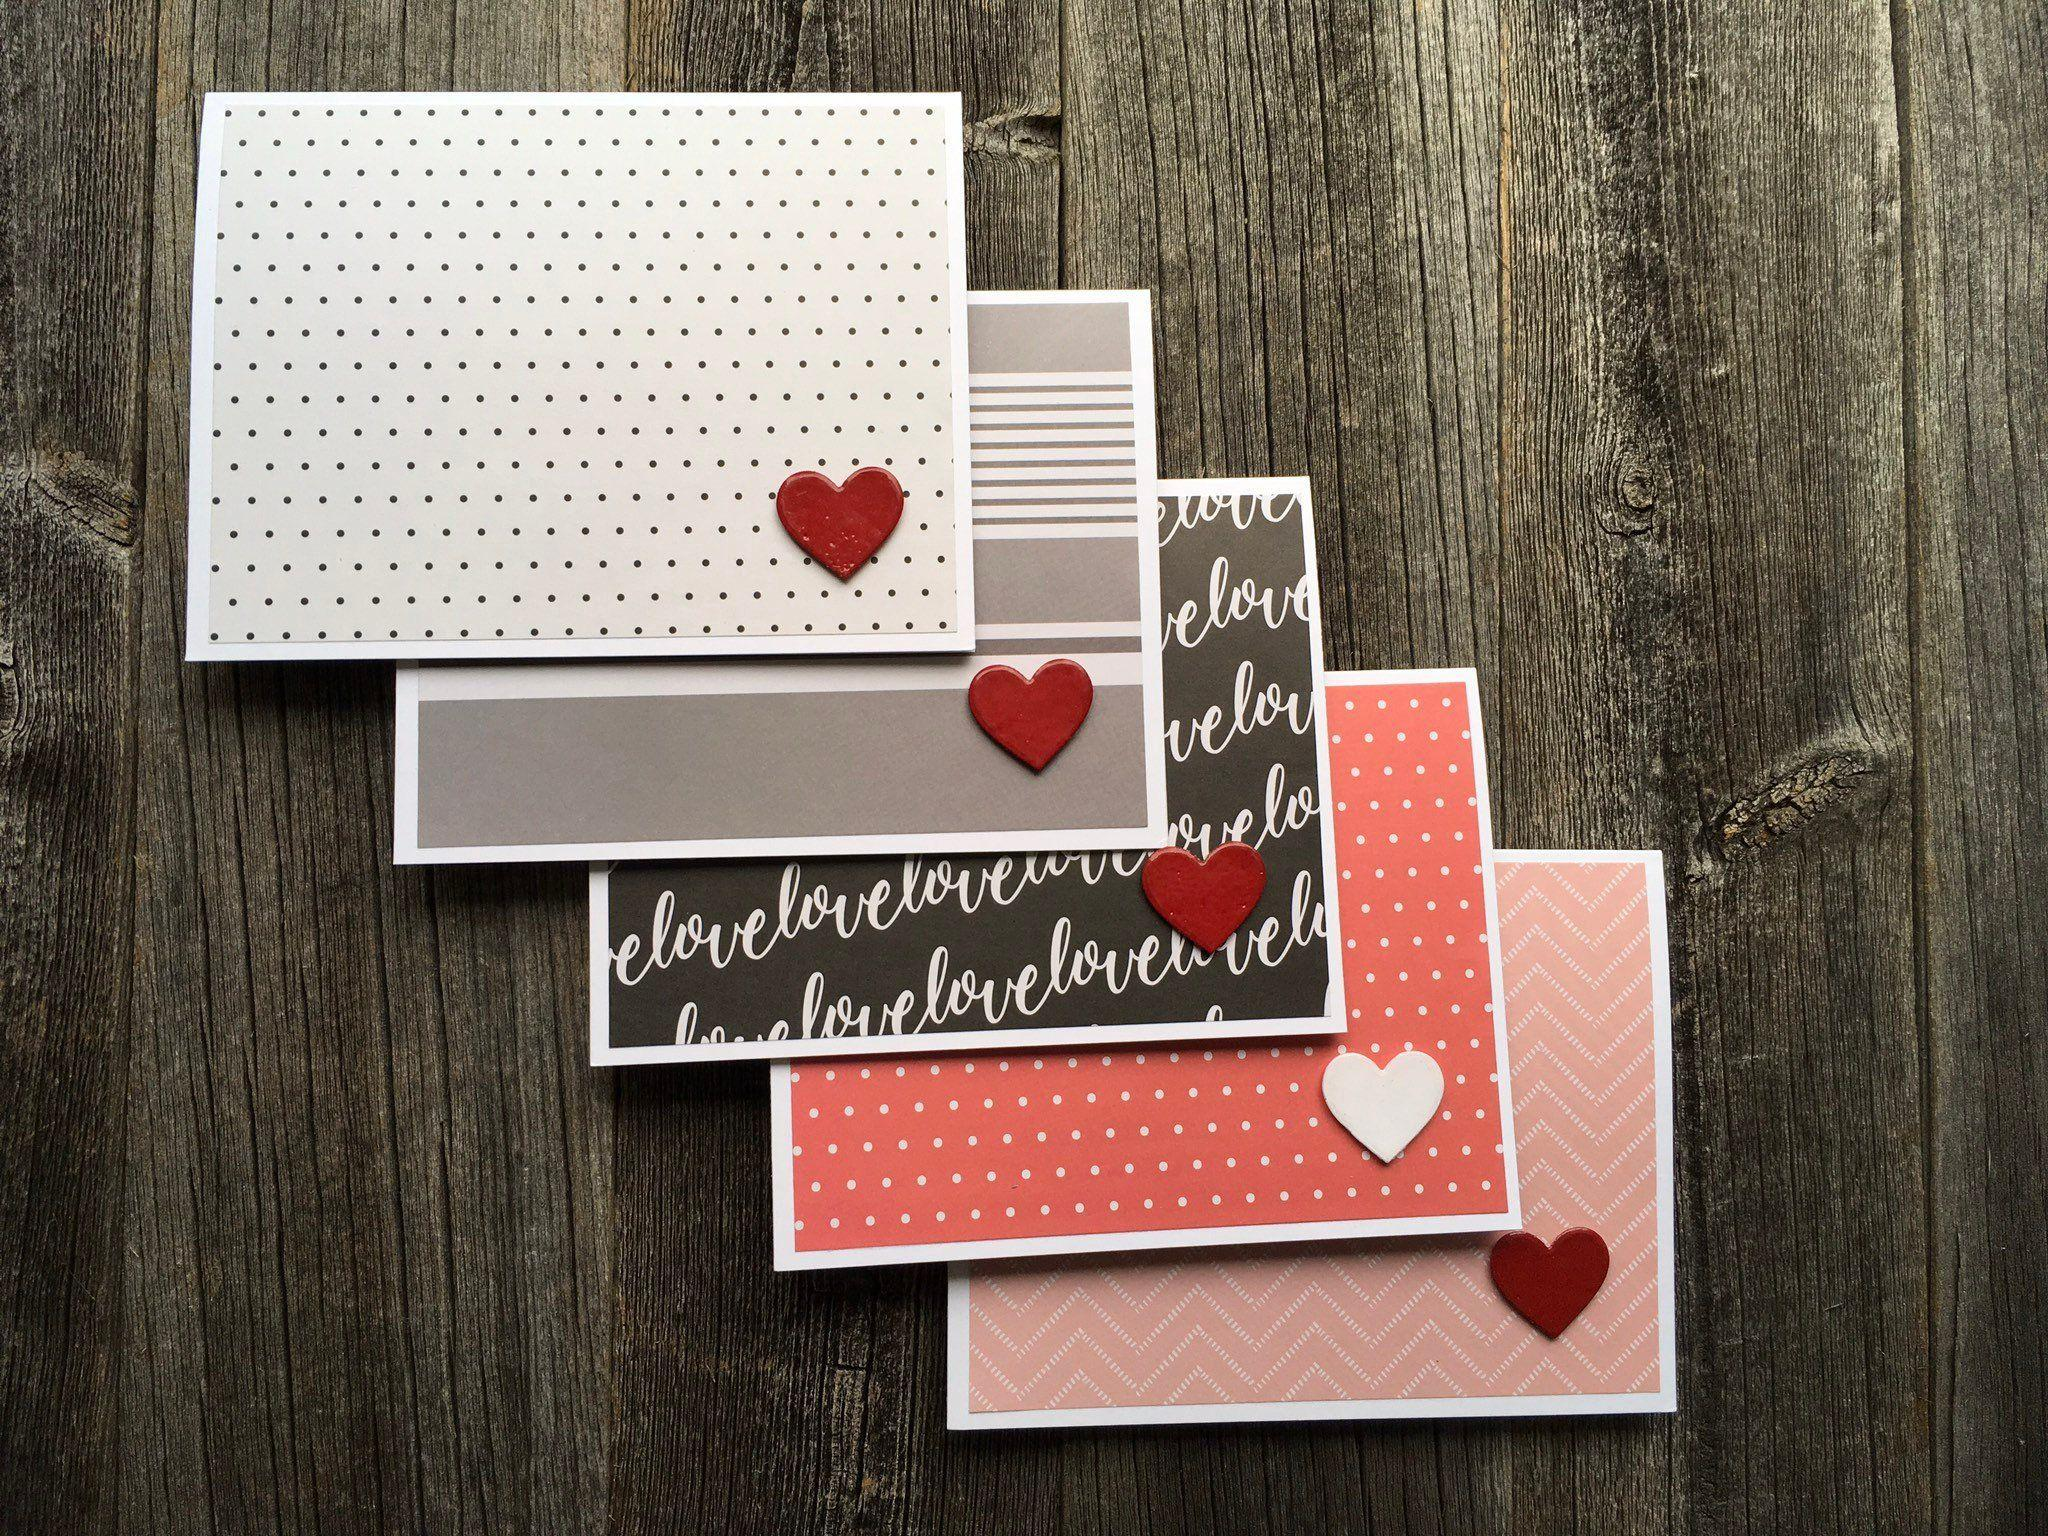 Set of 5 Minimalist Valentine's Day Cards, Handmade Cards for